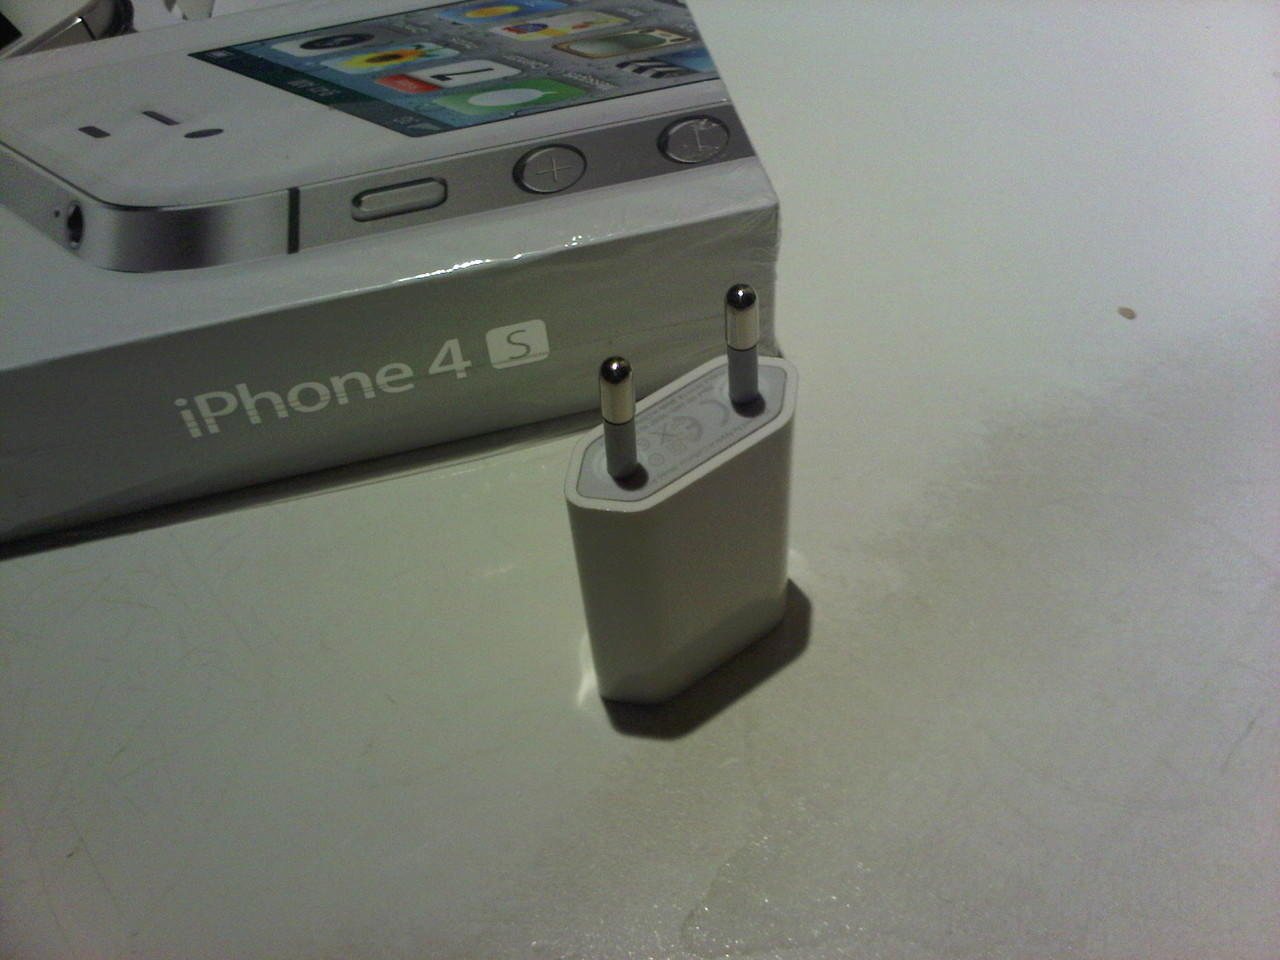 iPHONE 4S 2nd